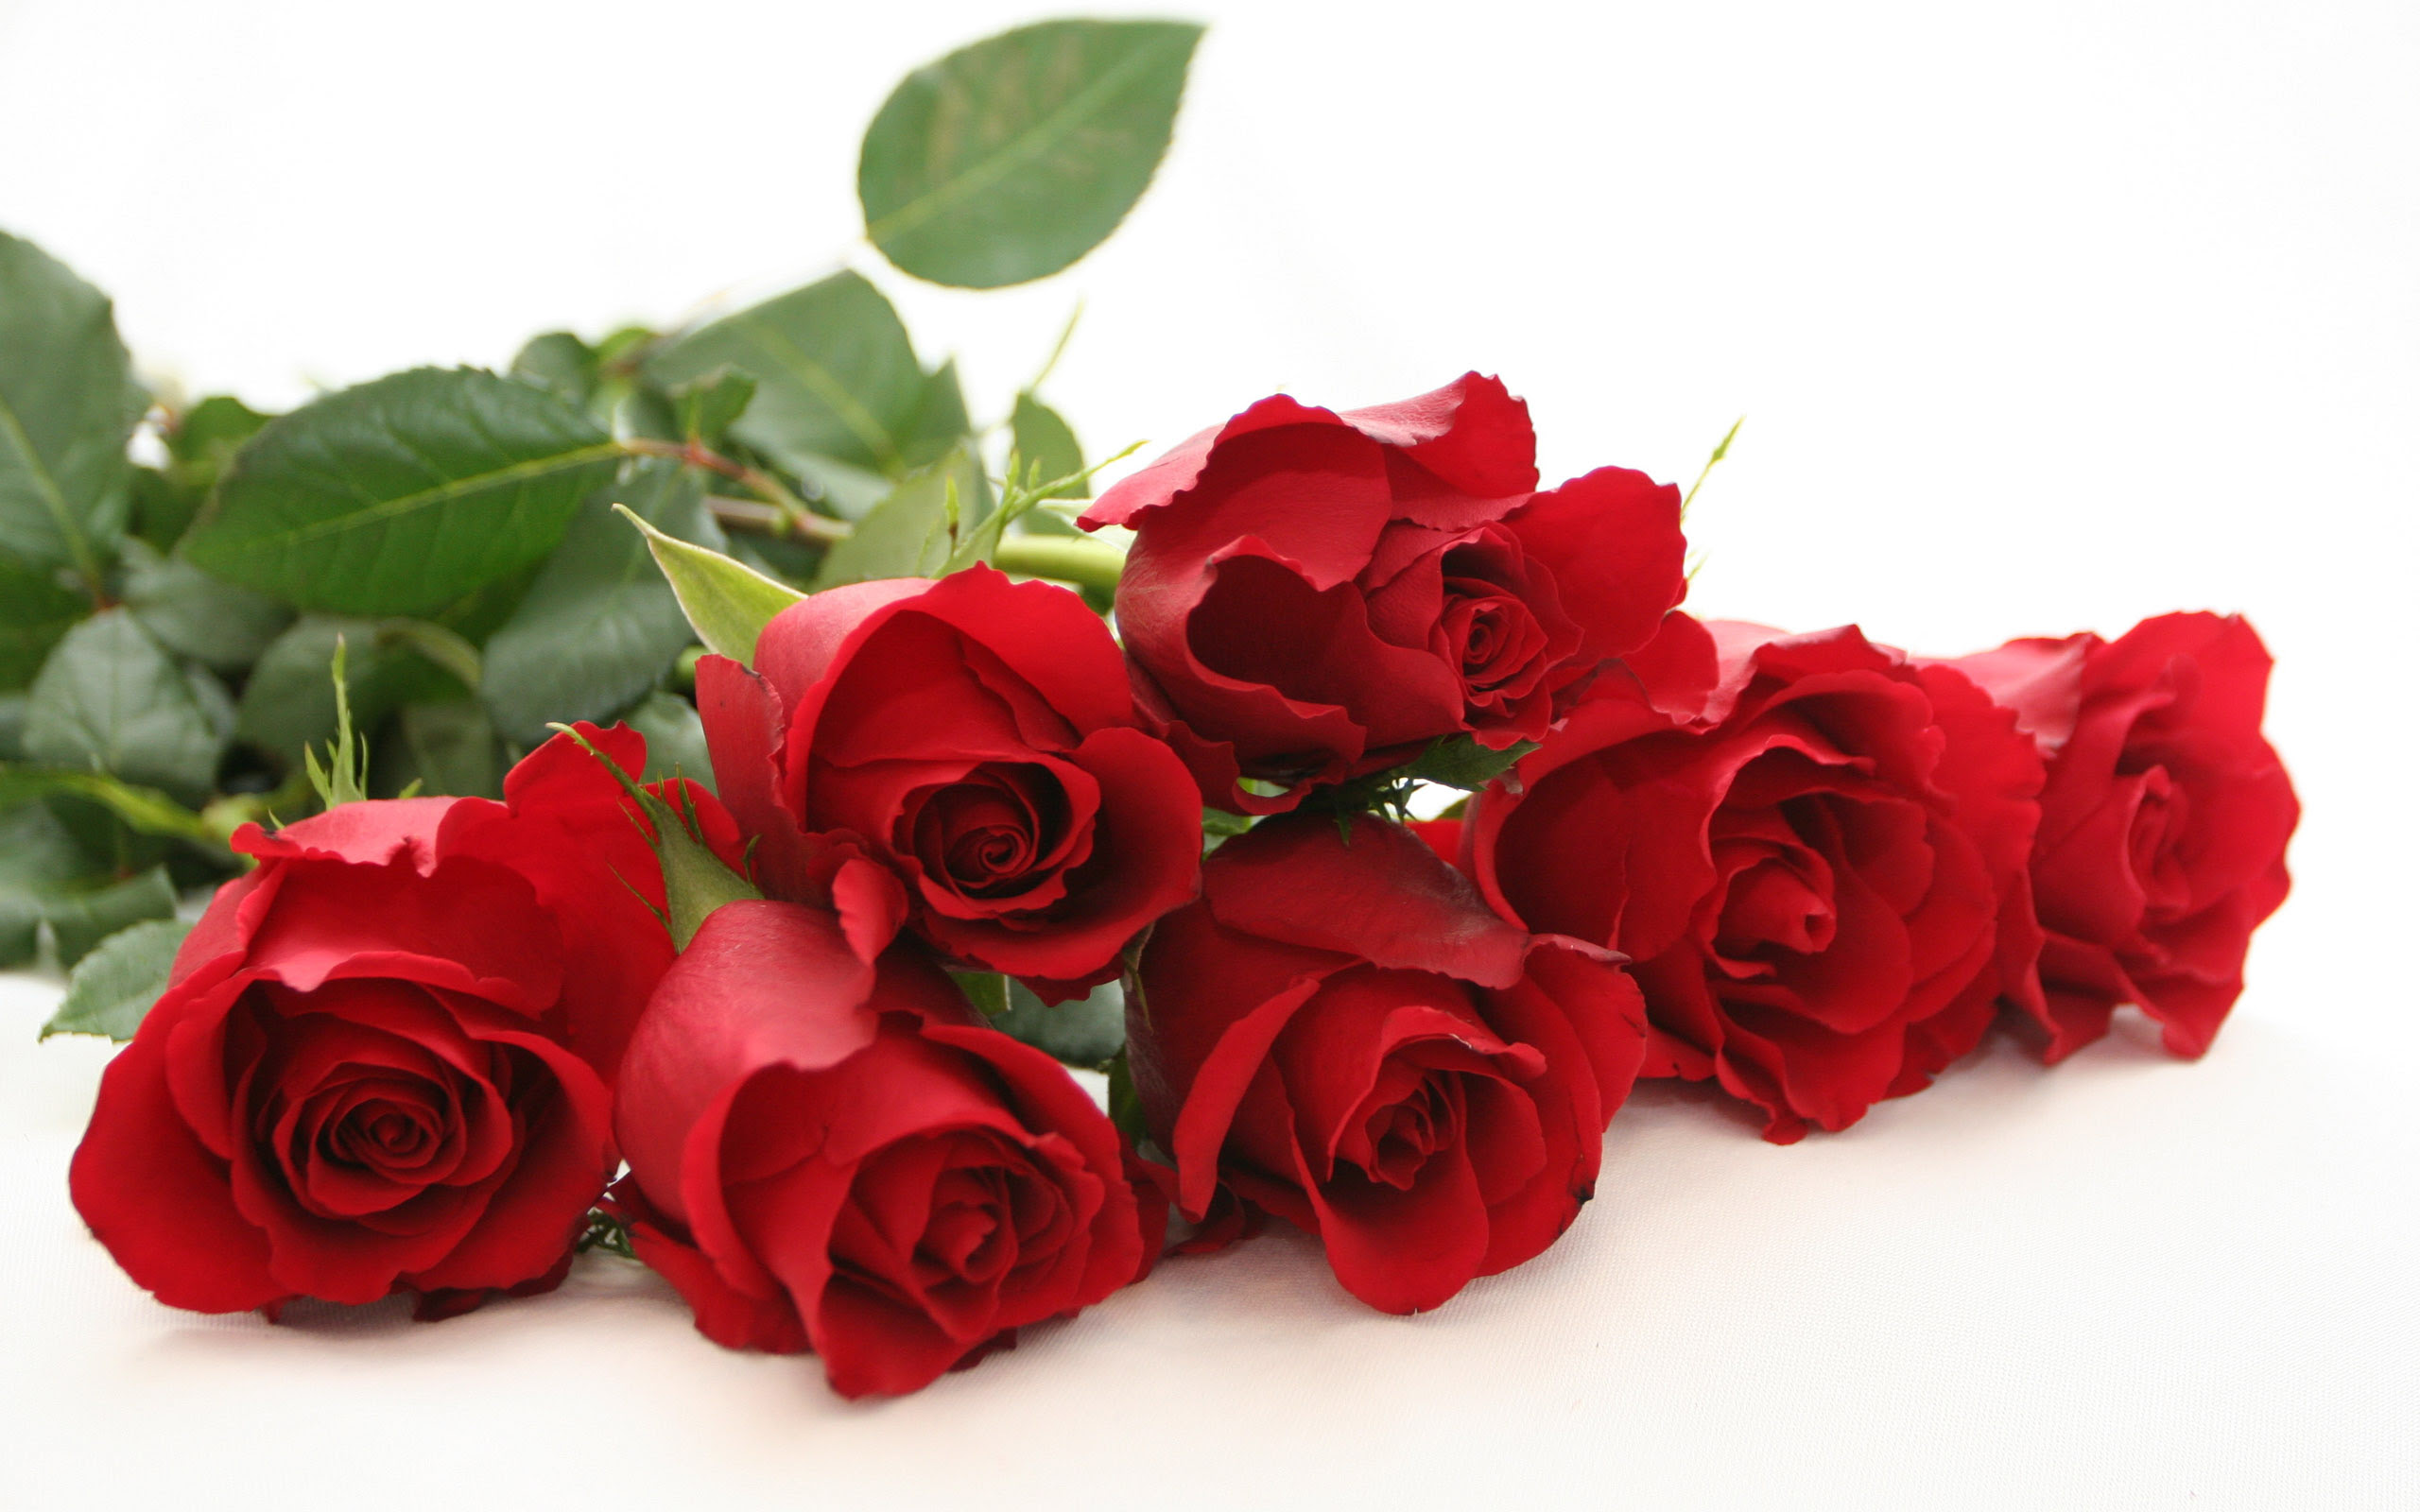 Free Rose Image Download Free Clip Art Free Clip Art On Clipart